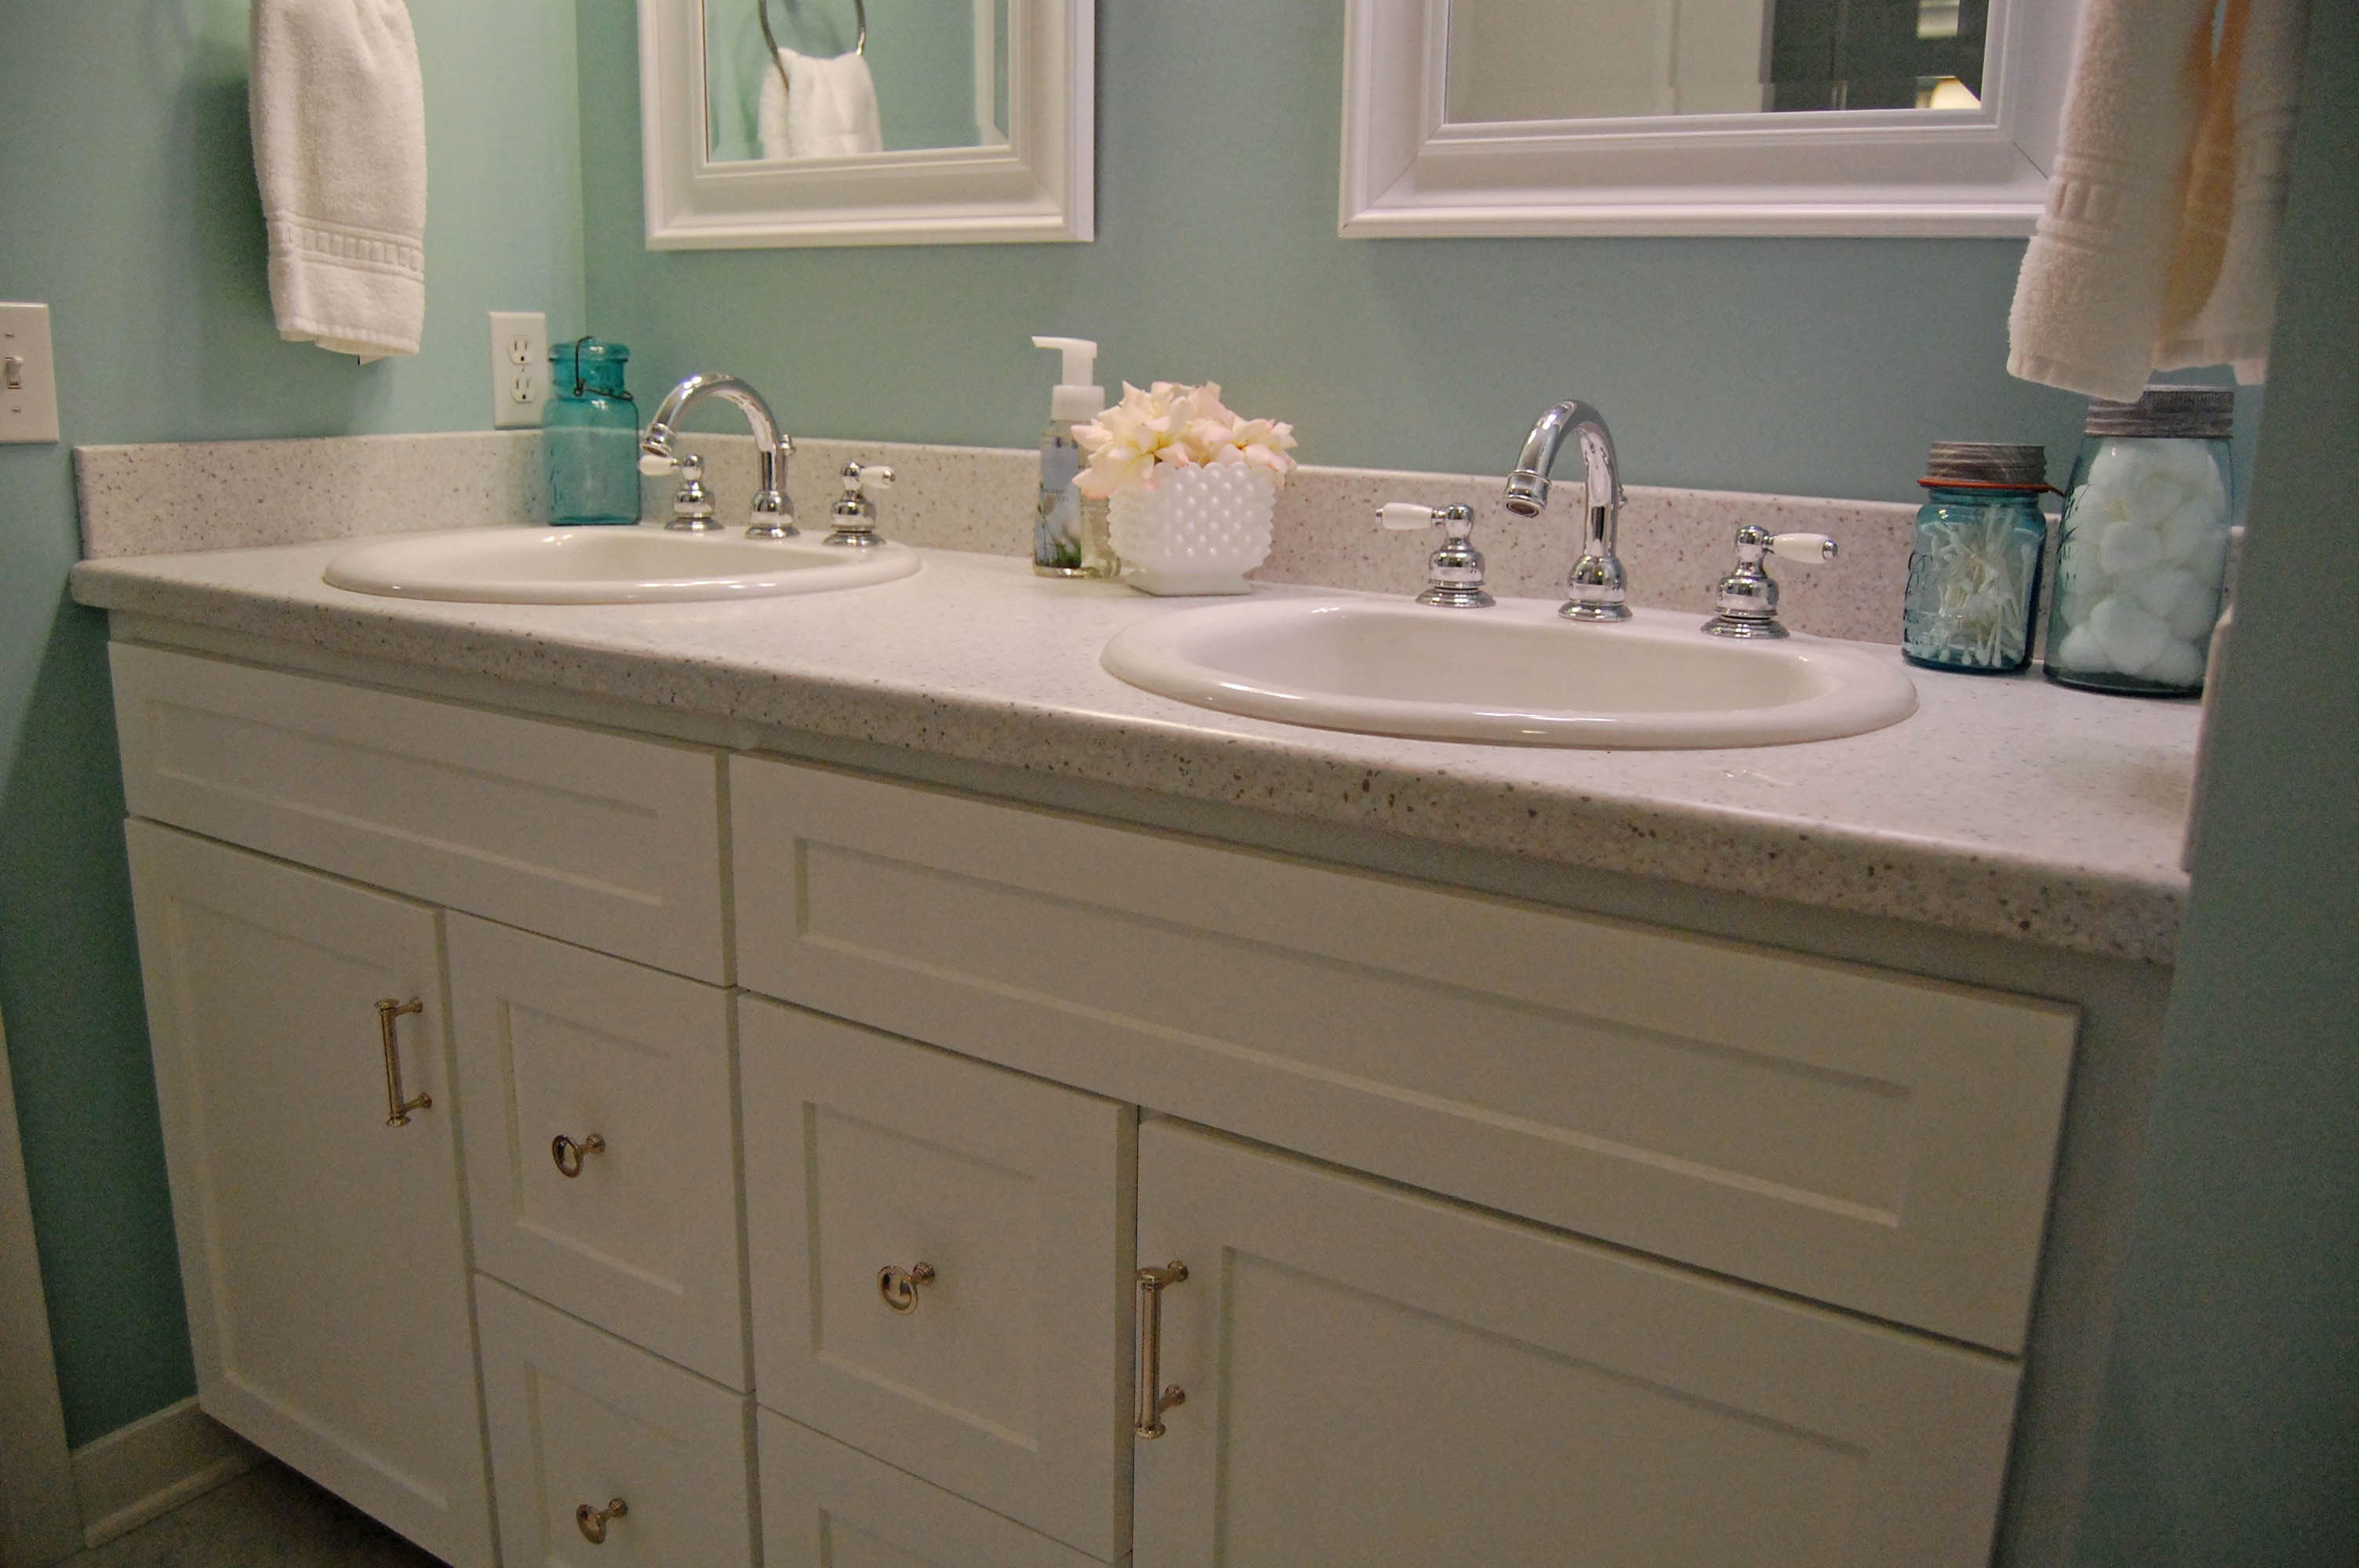 Howling Sherwin Williams Bathroom Paint Colors Sherwin Williams Watery Door Sherwin Williams Watery Coordinating Colors Red Shoes S Big Bathroom Reveal Girl houzz 01 Sherwin Williams Watery